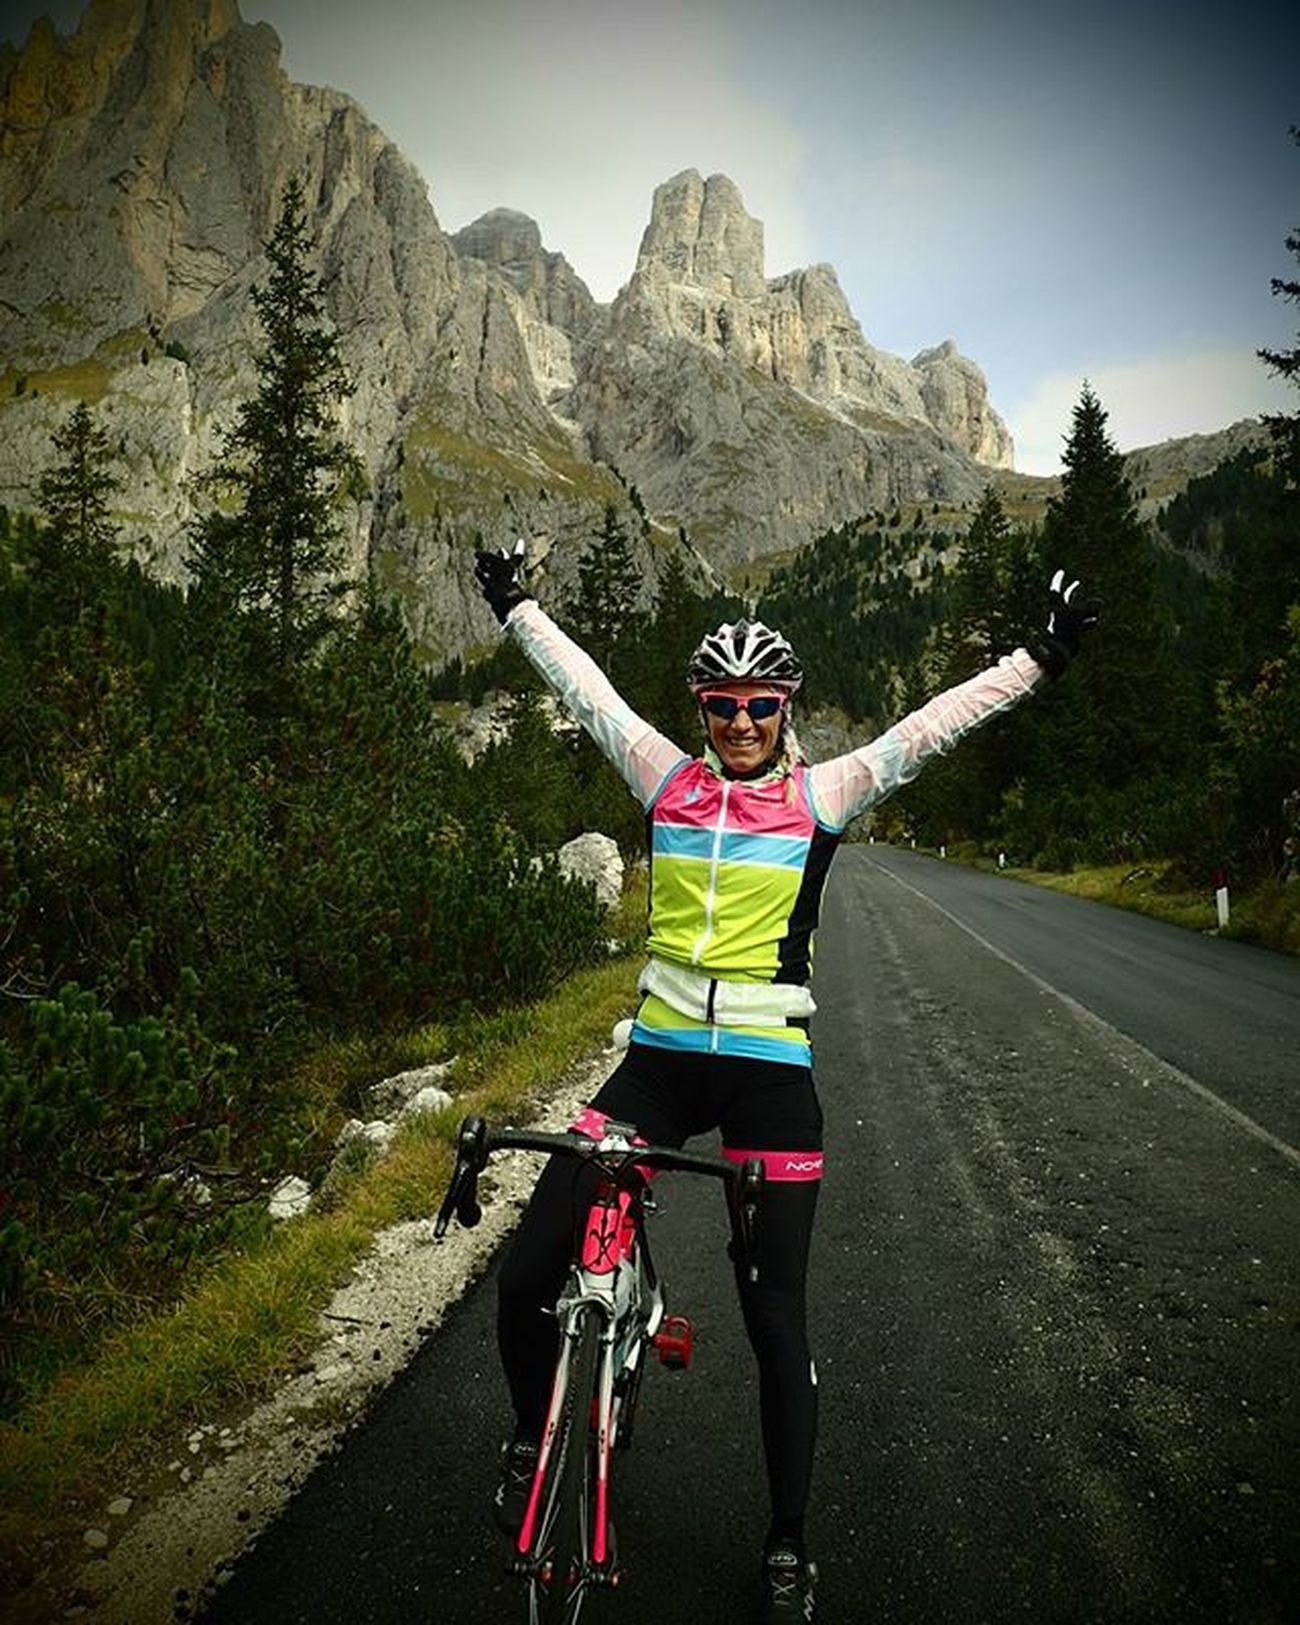 Cycling Ciclismo Stravaproveit Strava Stravacycling Stravaphoto Garmin Dolomites Dolomiti Loves_dolomiti My_dolomiti Puredolomites Loves_mountains Loves_nature Wilier Ilovemywilier Northwave Dolomitescycling Cyclingdolomites Sportaddict Bikesgirls Ridewithaview Cyclingfashion Womenonwheels Ridelikeagirl loves_trentino cyclinglife passosella passogardena loves_bikes IT waS suPeR harD daY wiTH suPer greAt vieWs anD speCtacuLaR sceNerY-I guEss I diD tHe 14tH stAge oF giRo 2016 a LiTTle biT too EarLy :):)